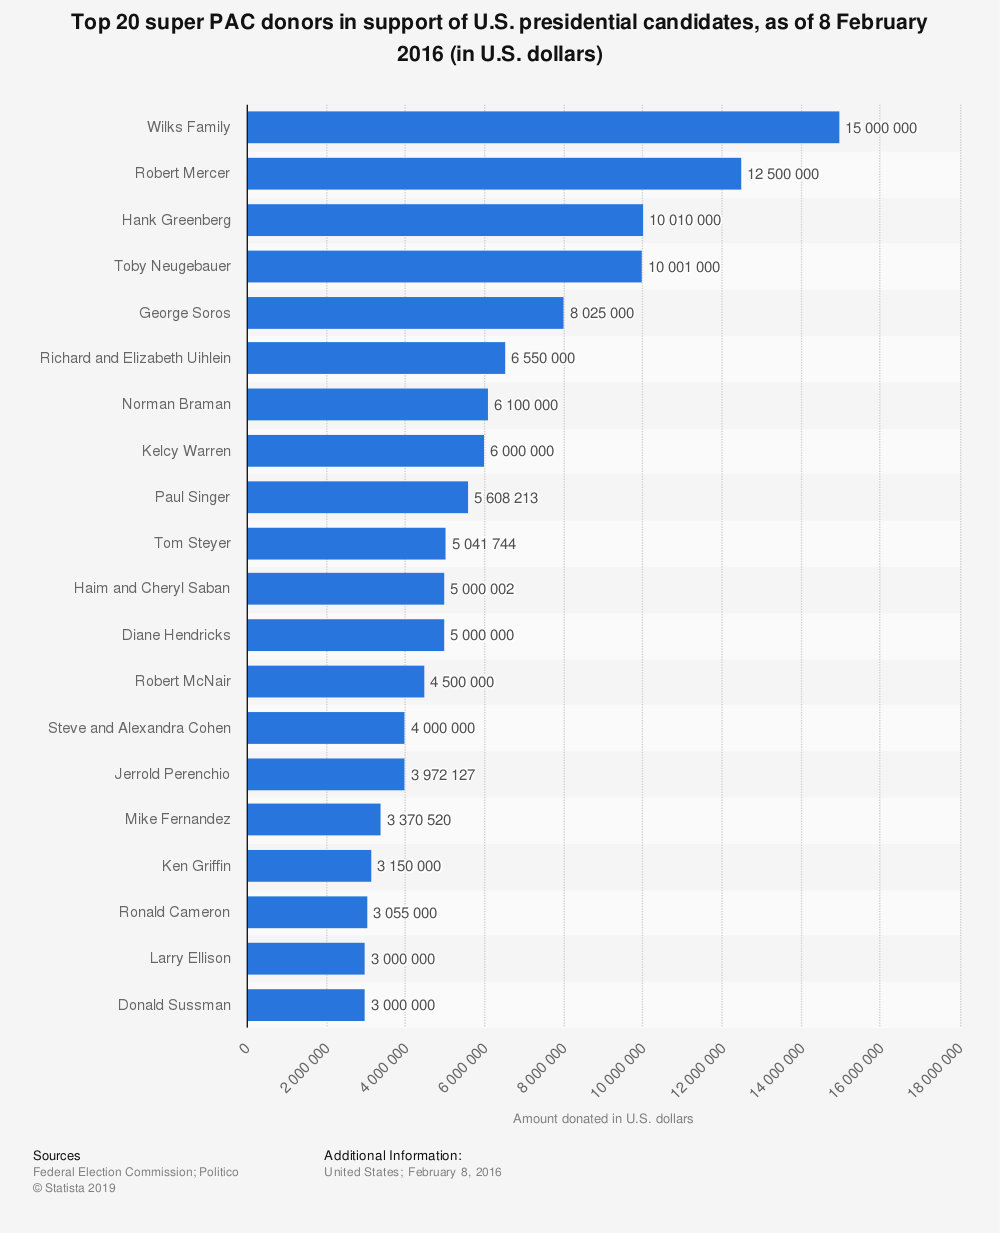 Statistic: Top 20 super PAC donors in support of U.S. presidential candidates, as of 8 February 2016 (in U.S. dollars)   | Statista